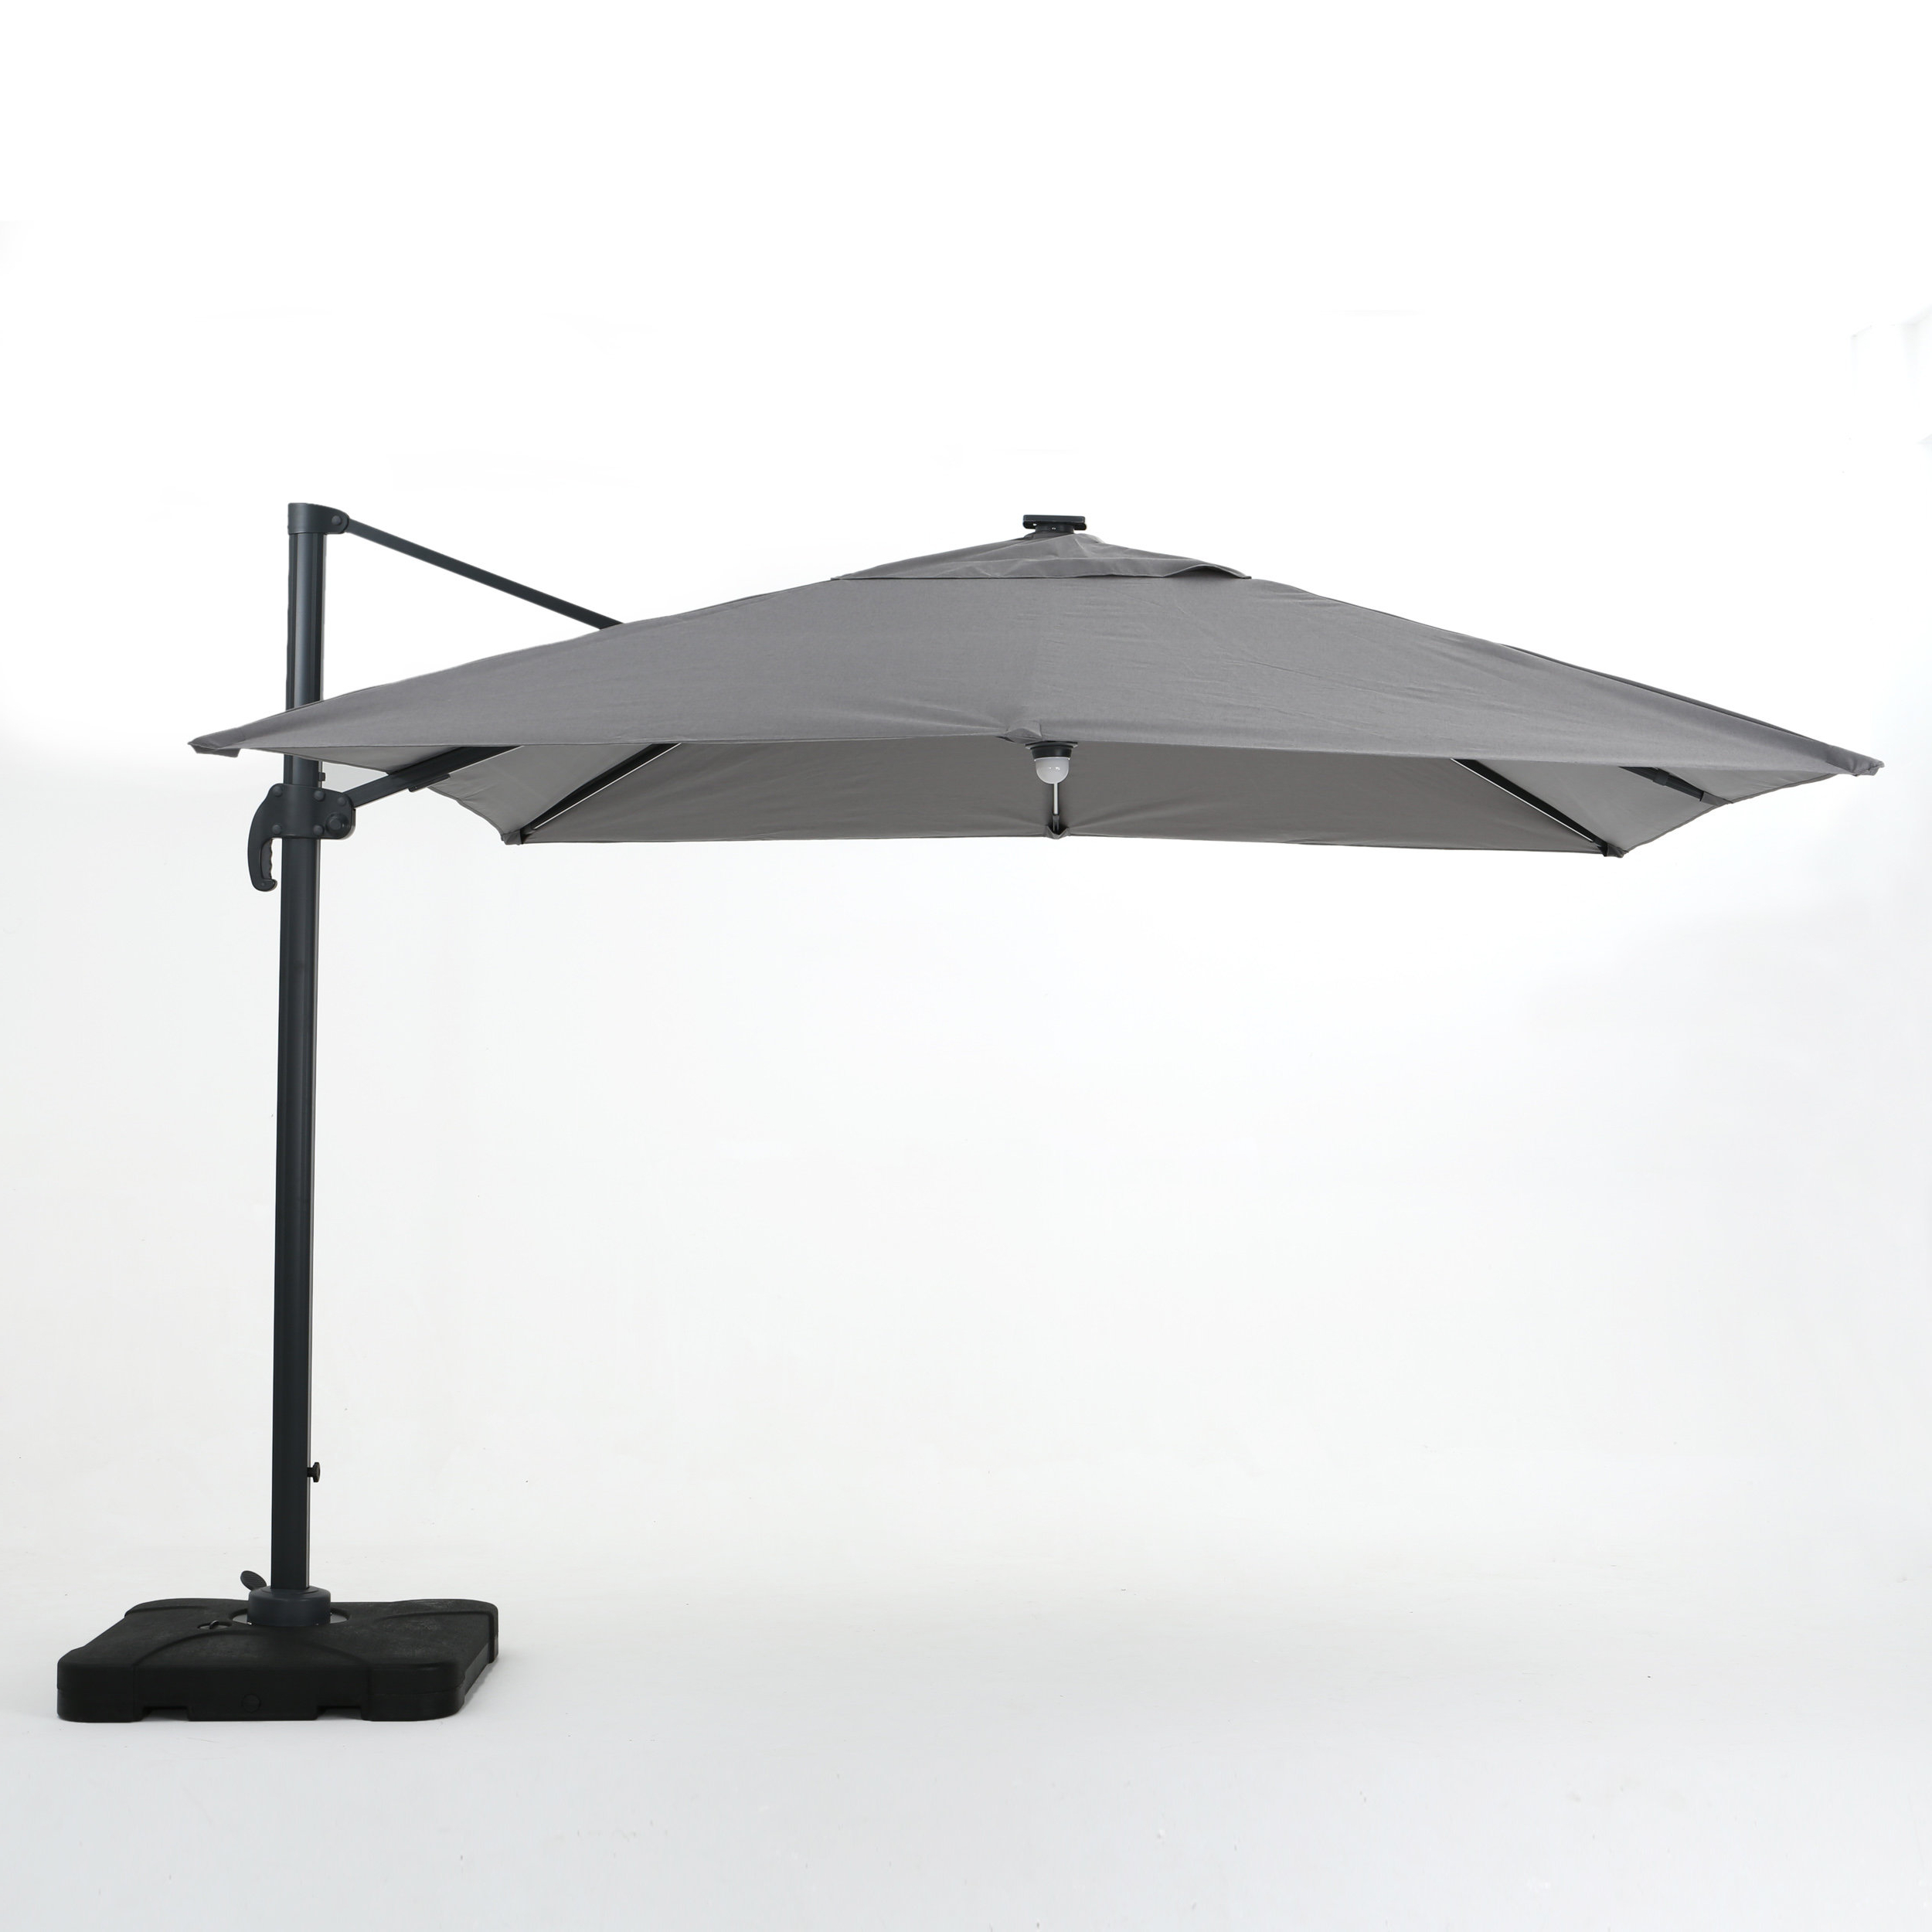 Jendayi Square Cantilever Umbrella Intended For Trendy Bondi Square Cantilever Umbrellas (Gallery 5 of 20)